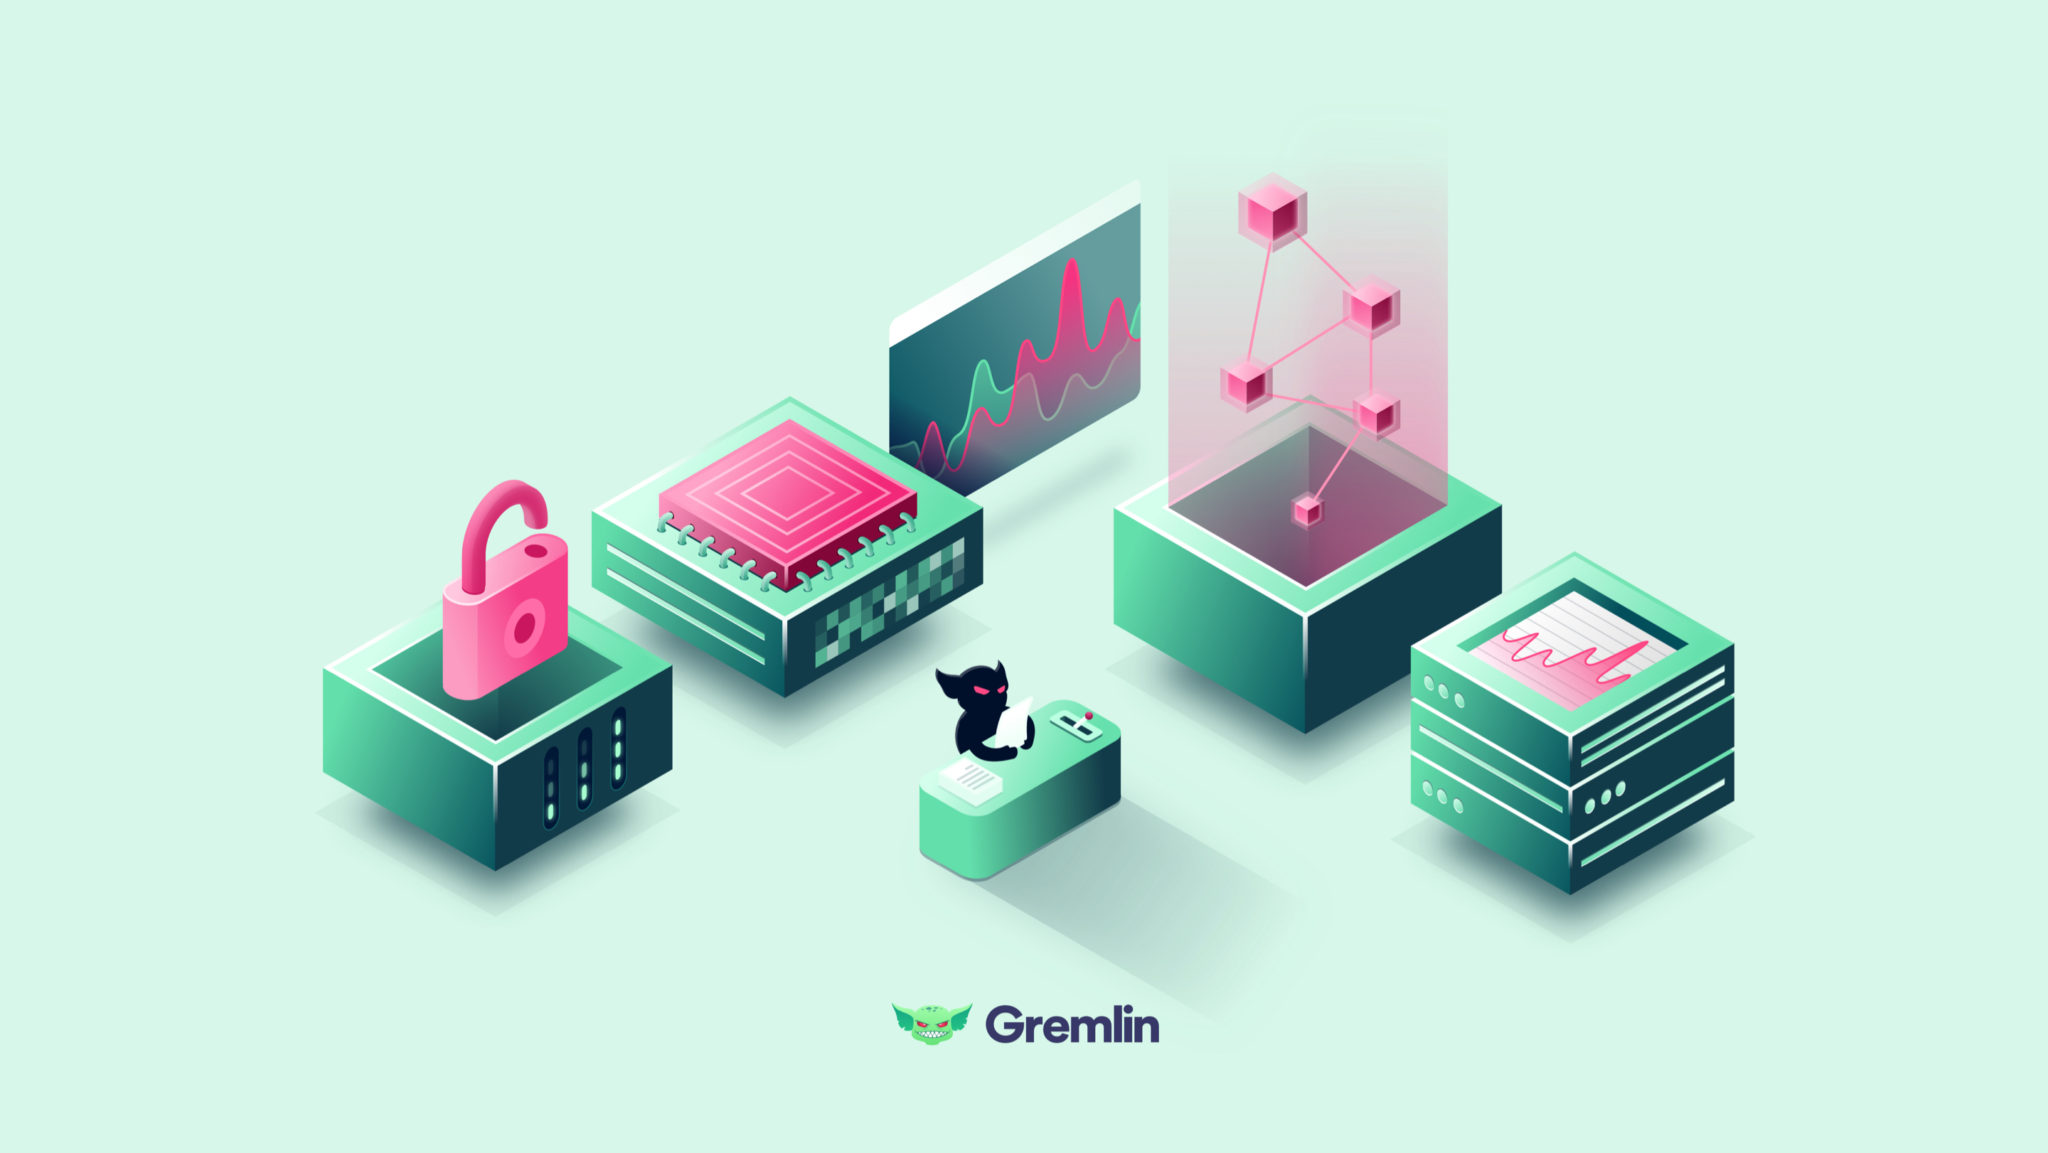 Illustration_06-Gremlin@2x